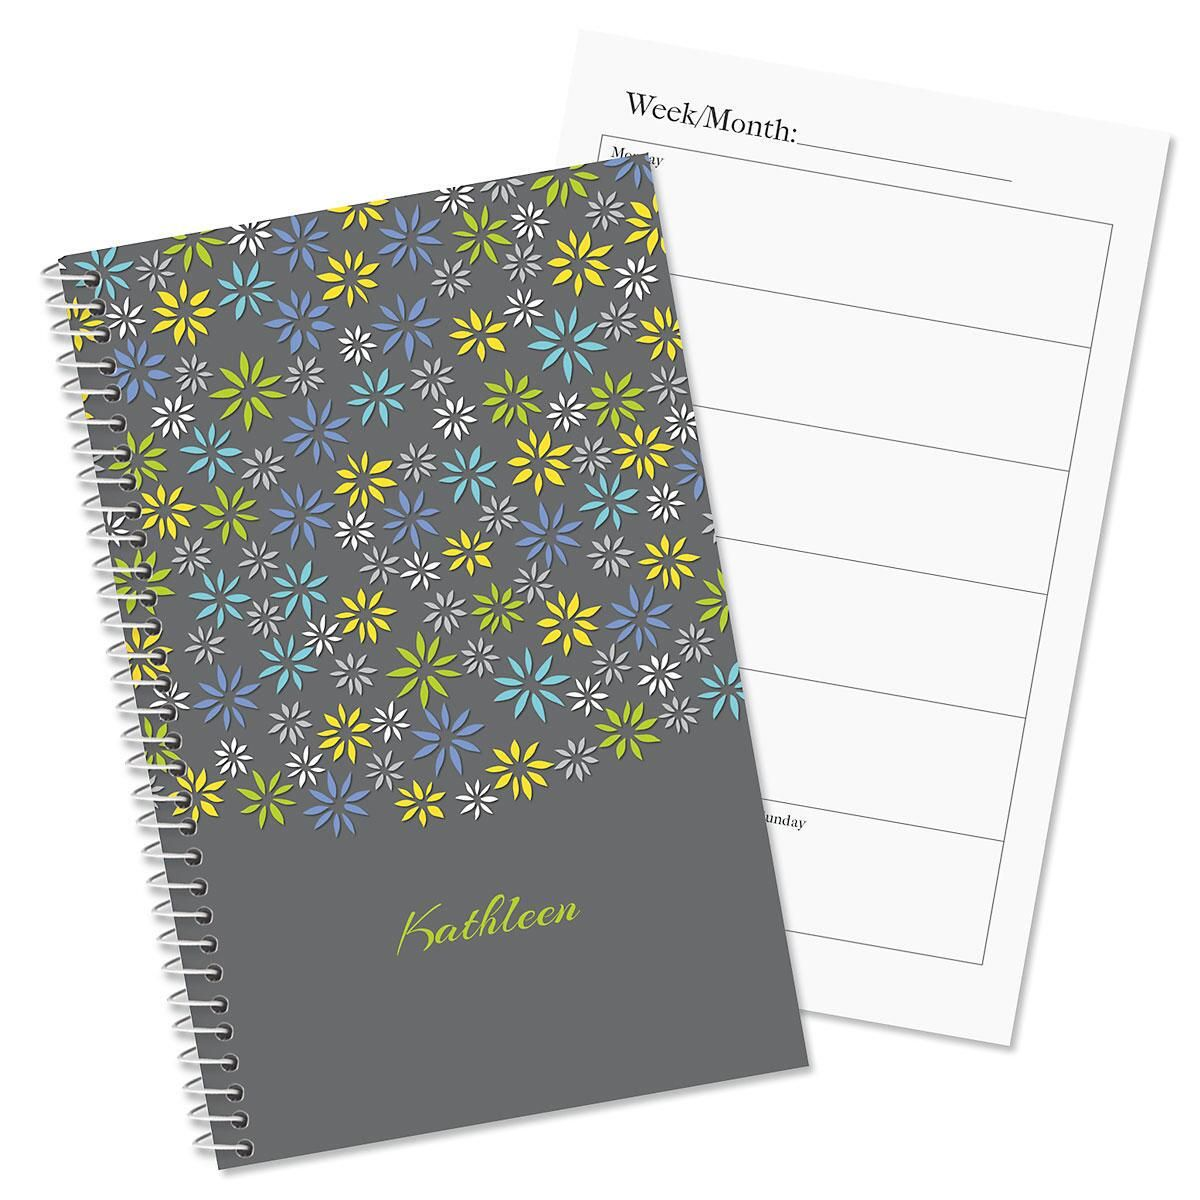 Flower sky personalized planner colorful images for Custom photo planner